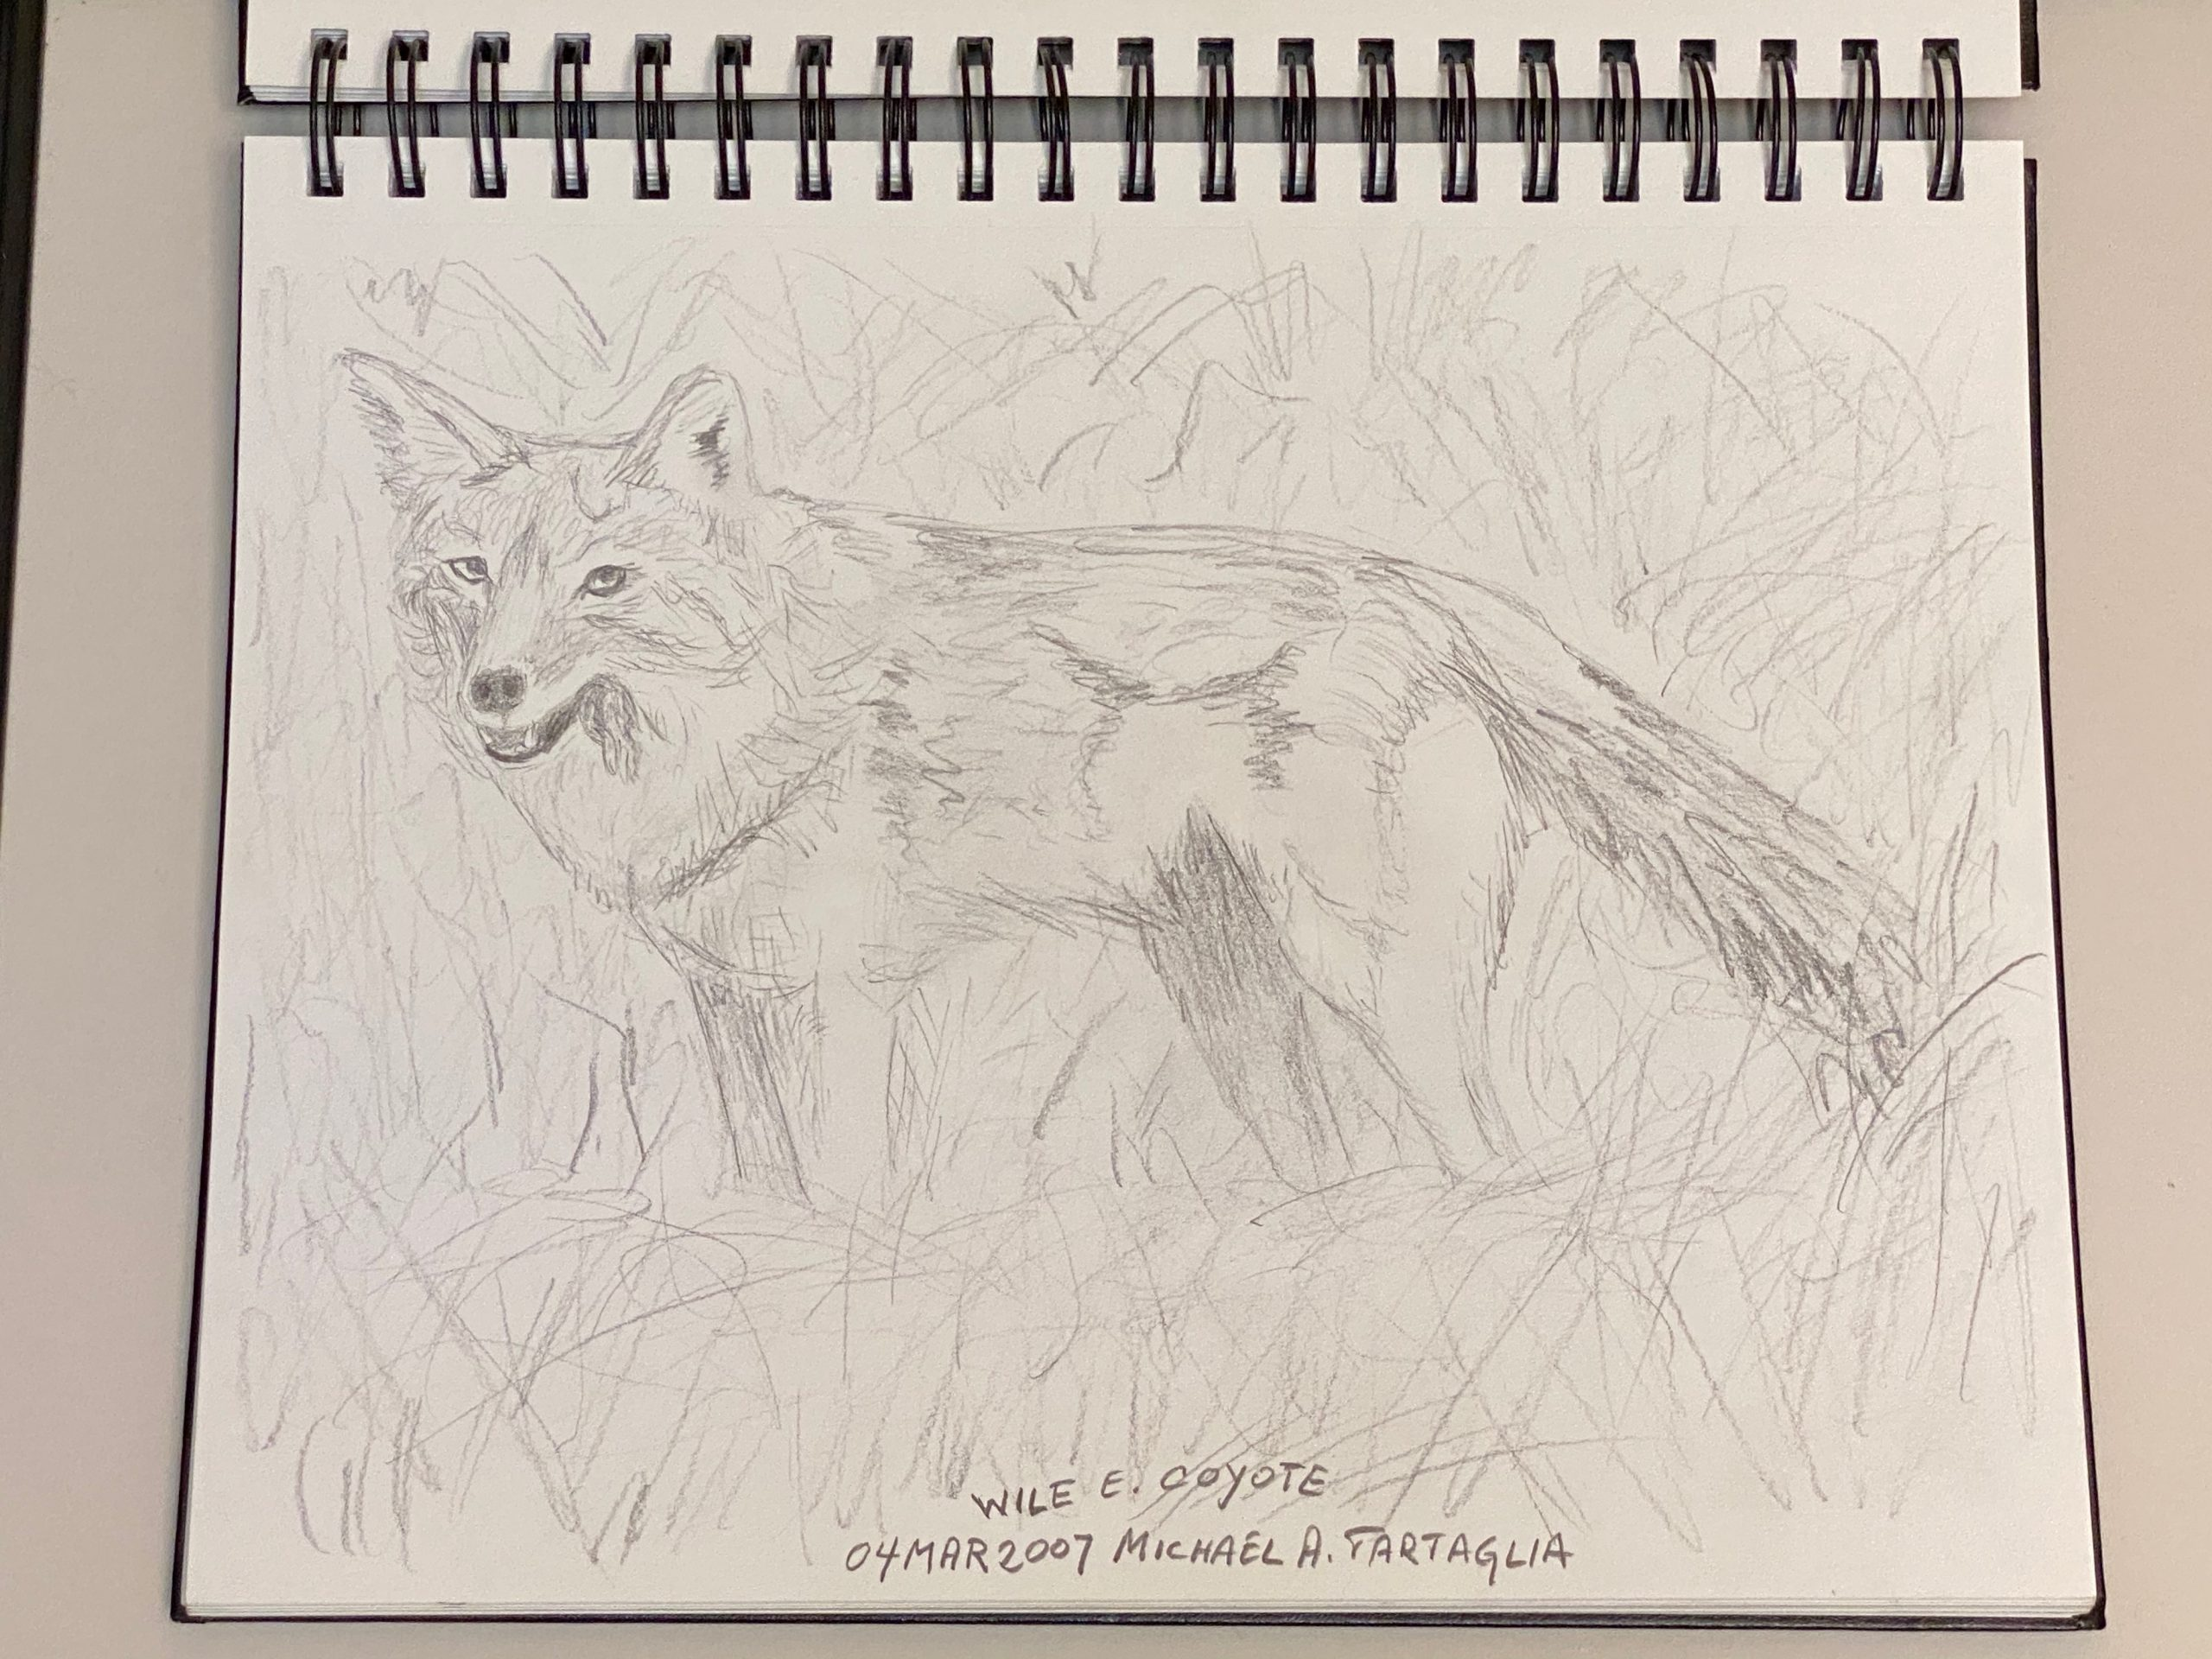 """A recent coyote Photo of the Day triggered the artist's memory another photo, published in the former Fermilab Today in 2007, by <a href=""""https://www.fnal.gov/pub/today/images/images07/FridayLunch.jpg"""">Greg Vogel</a>. It inspired this quick sketch way back then. Hey kids, get out your colored pencils! art, wildlife, animal, mammal, coyote Drawing: Michael Tartaglia"""